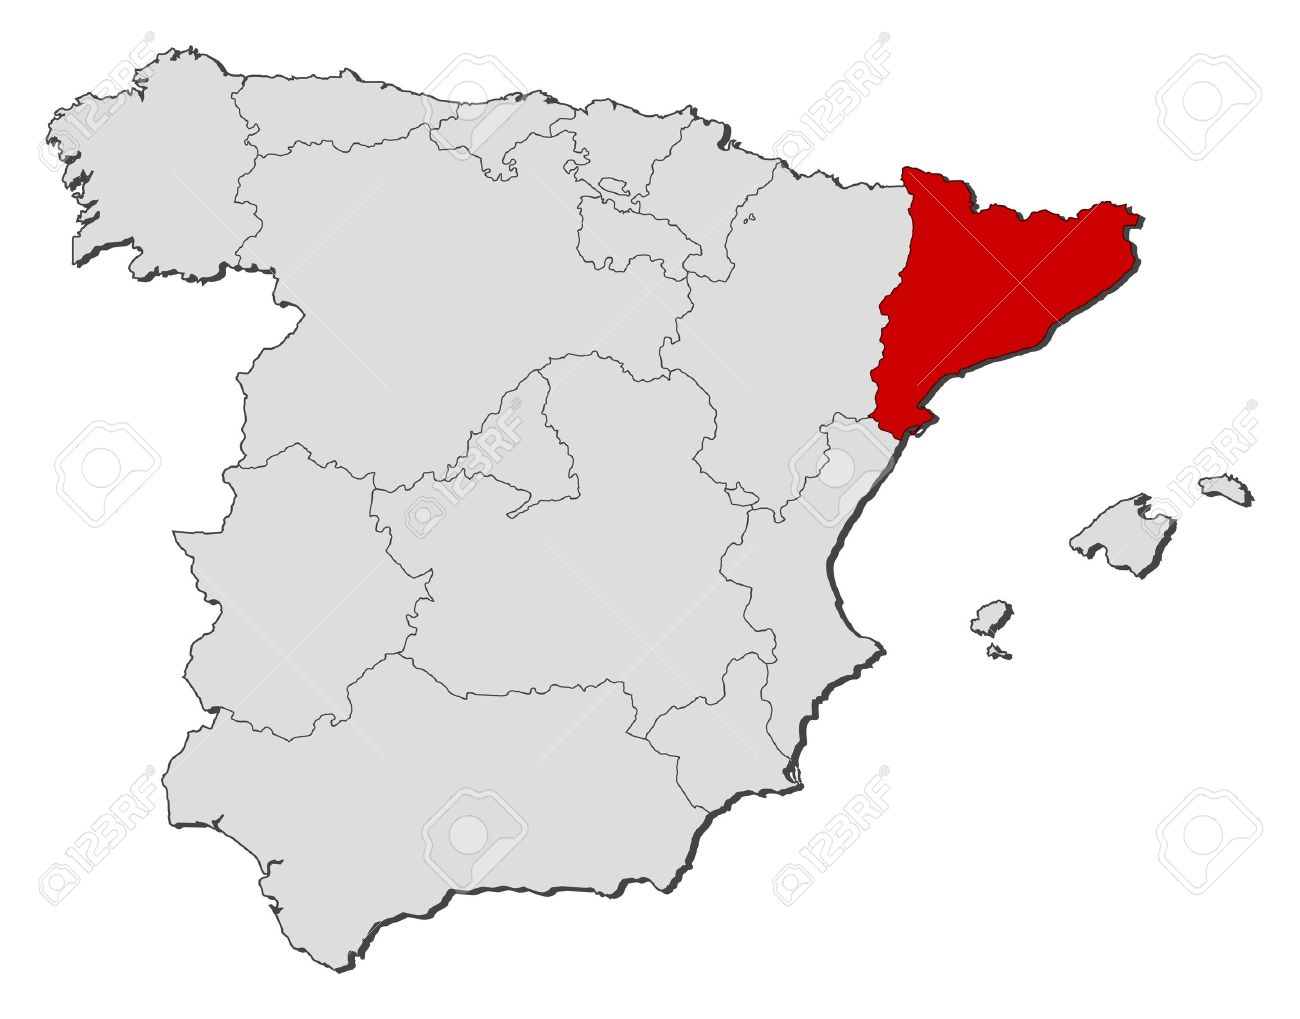 Map Of Spain With Catalonia Highlighted.Political Map Of Spain With The Several Regions Where Catalonia